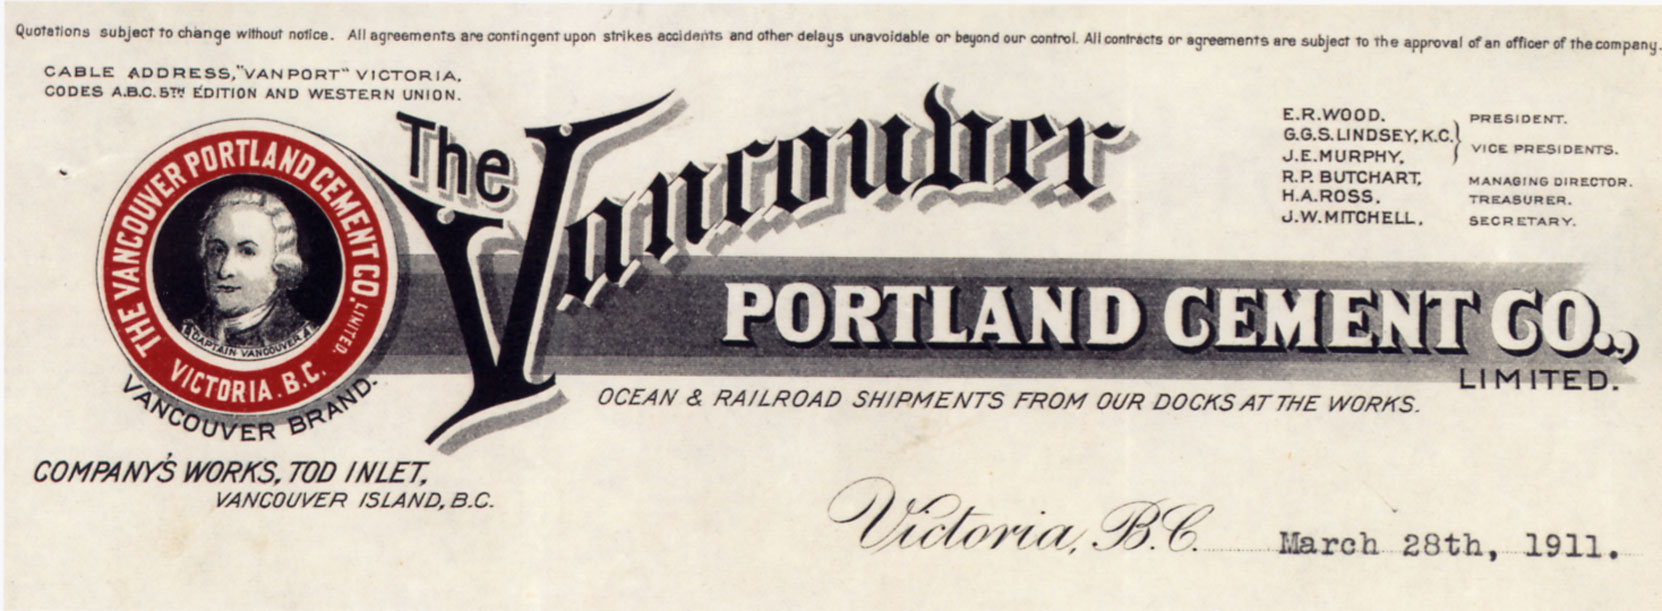 Vancouver Portland Cement Company Limited, letterhead, 1911 (Author's collection)